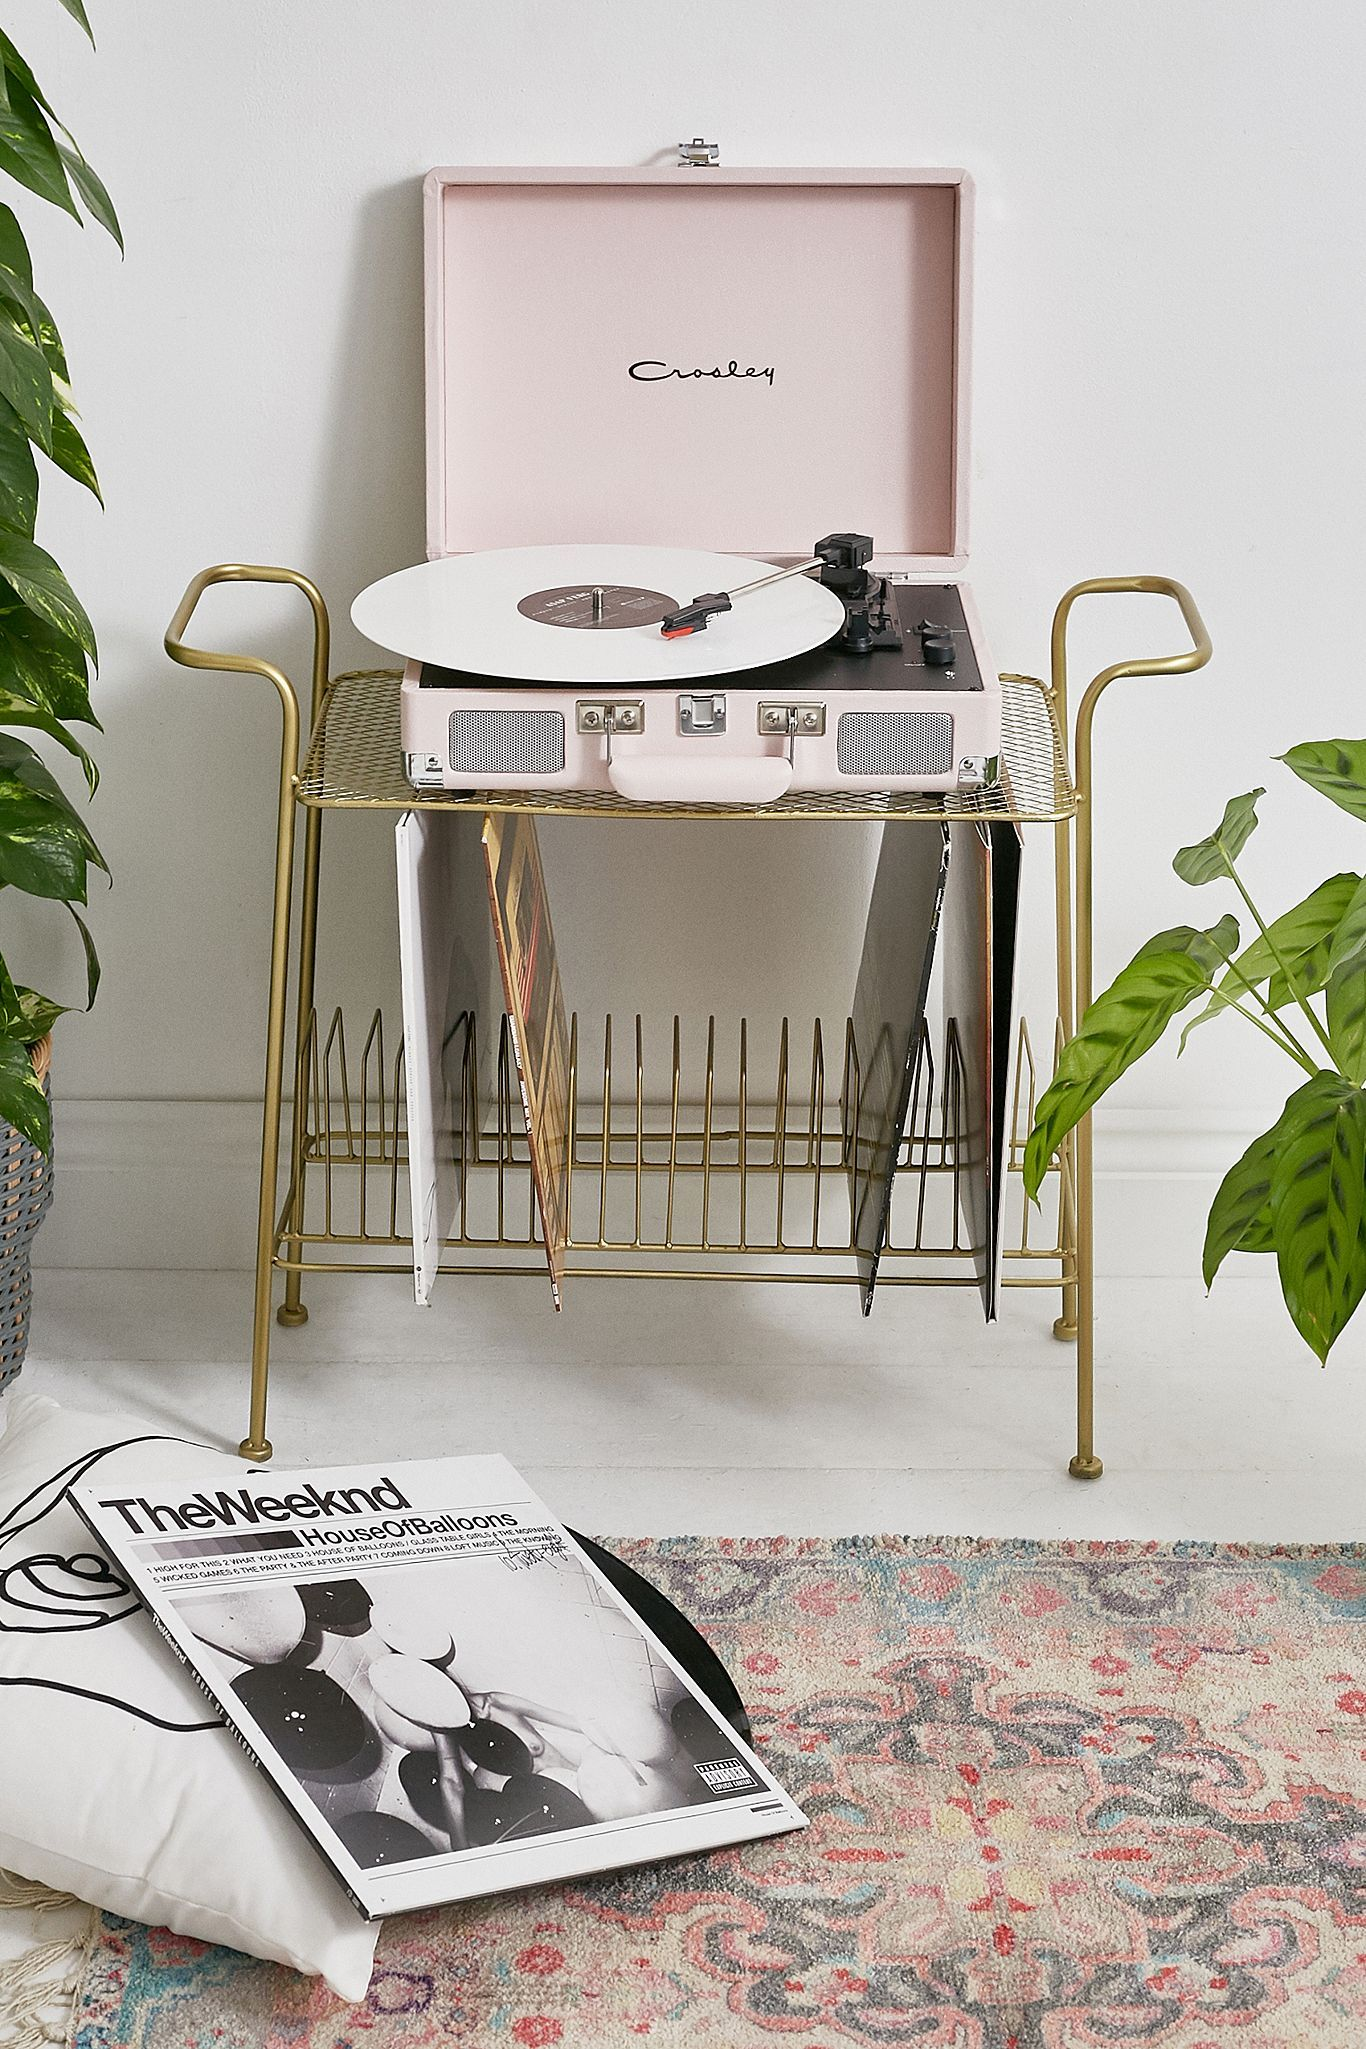 Crosley Uo Exclusive Cruiser Pastel Pink Bluetooth Vinyl Record Player Urban Outfitters Uk In 2020 Vinyl Record Player Record Player Vinyl Player